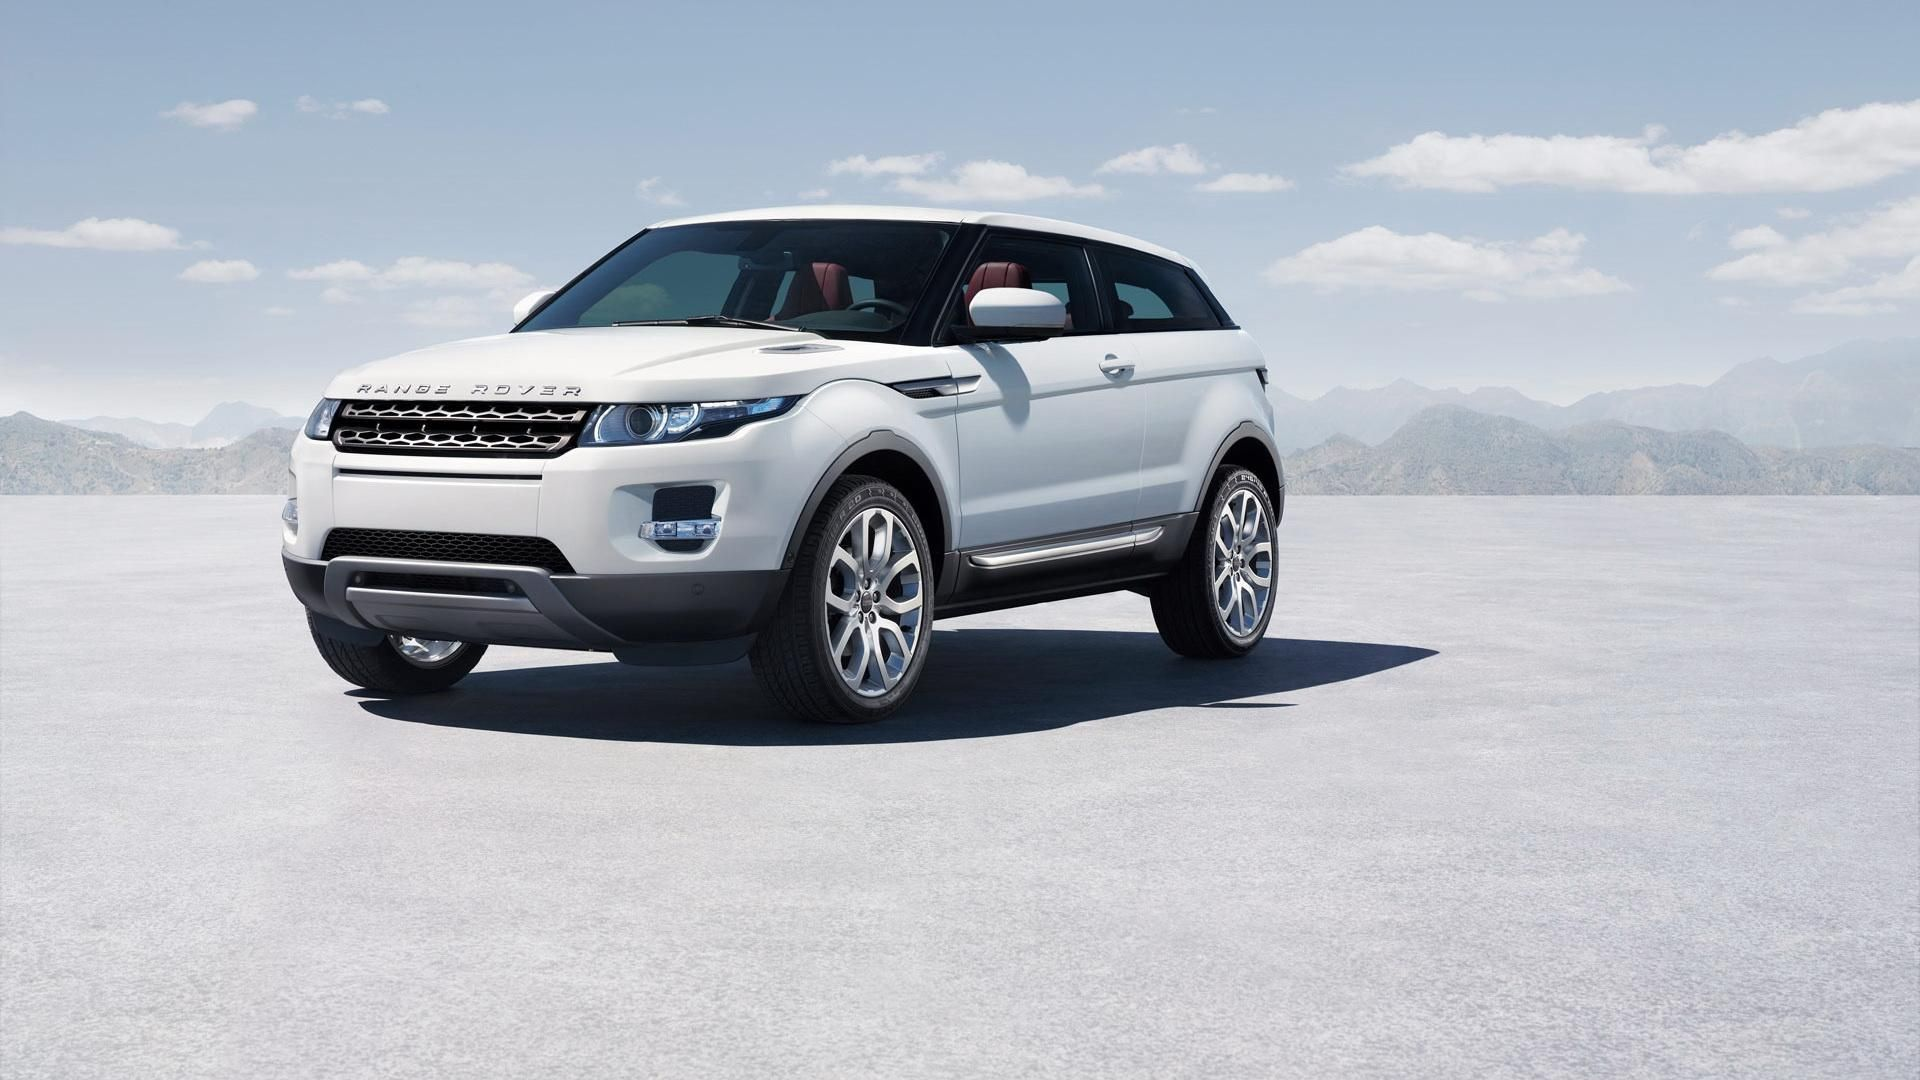 75 best Range Rover Evoque images on Pinterest